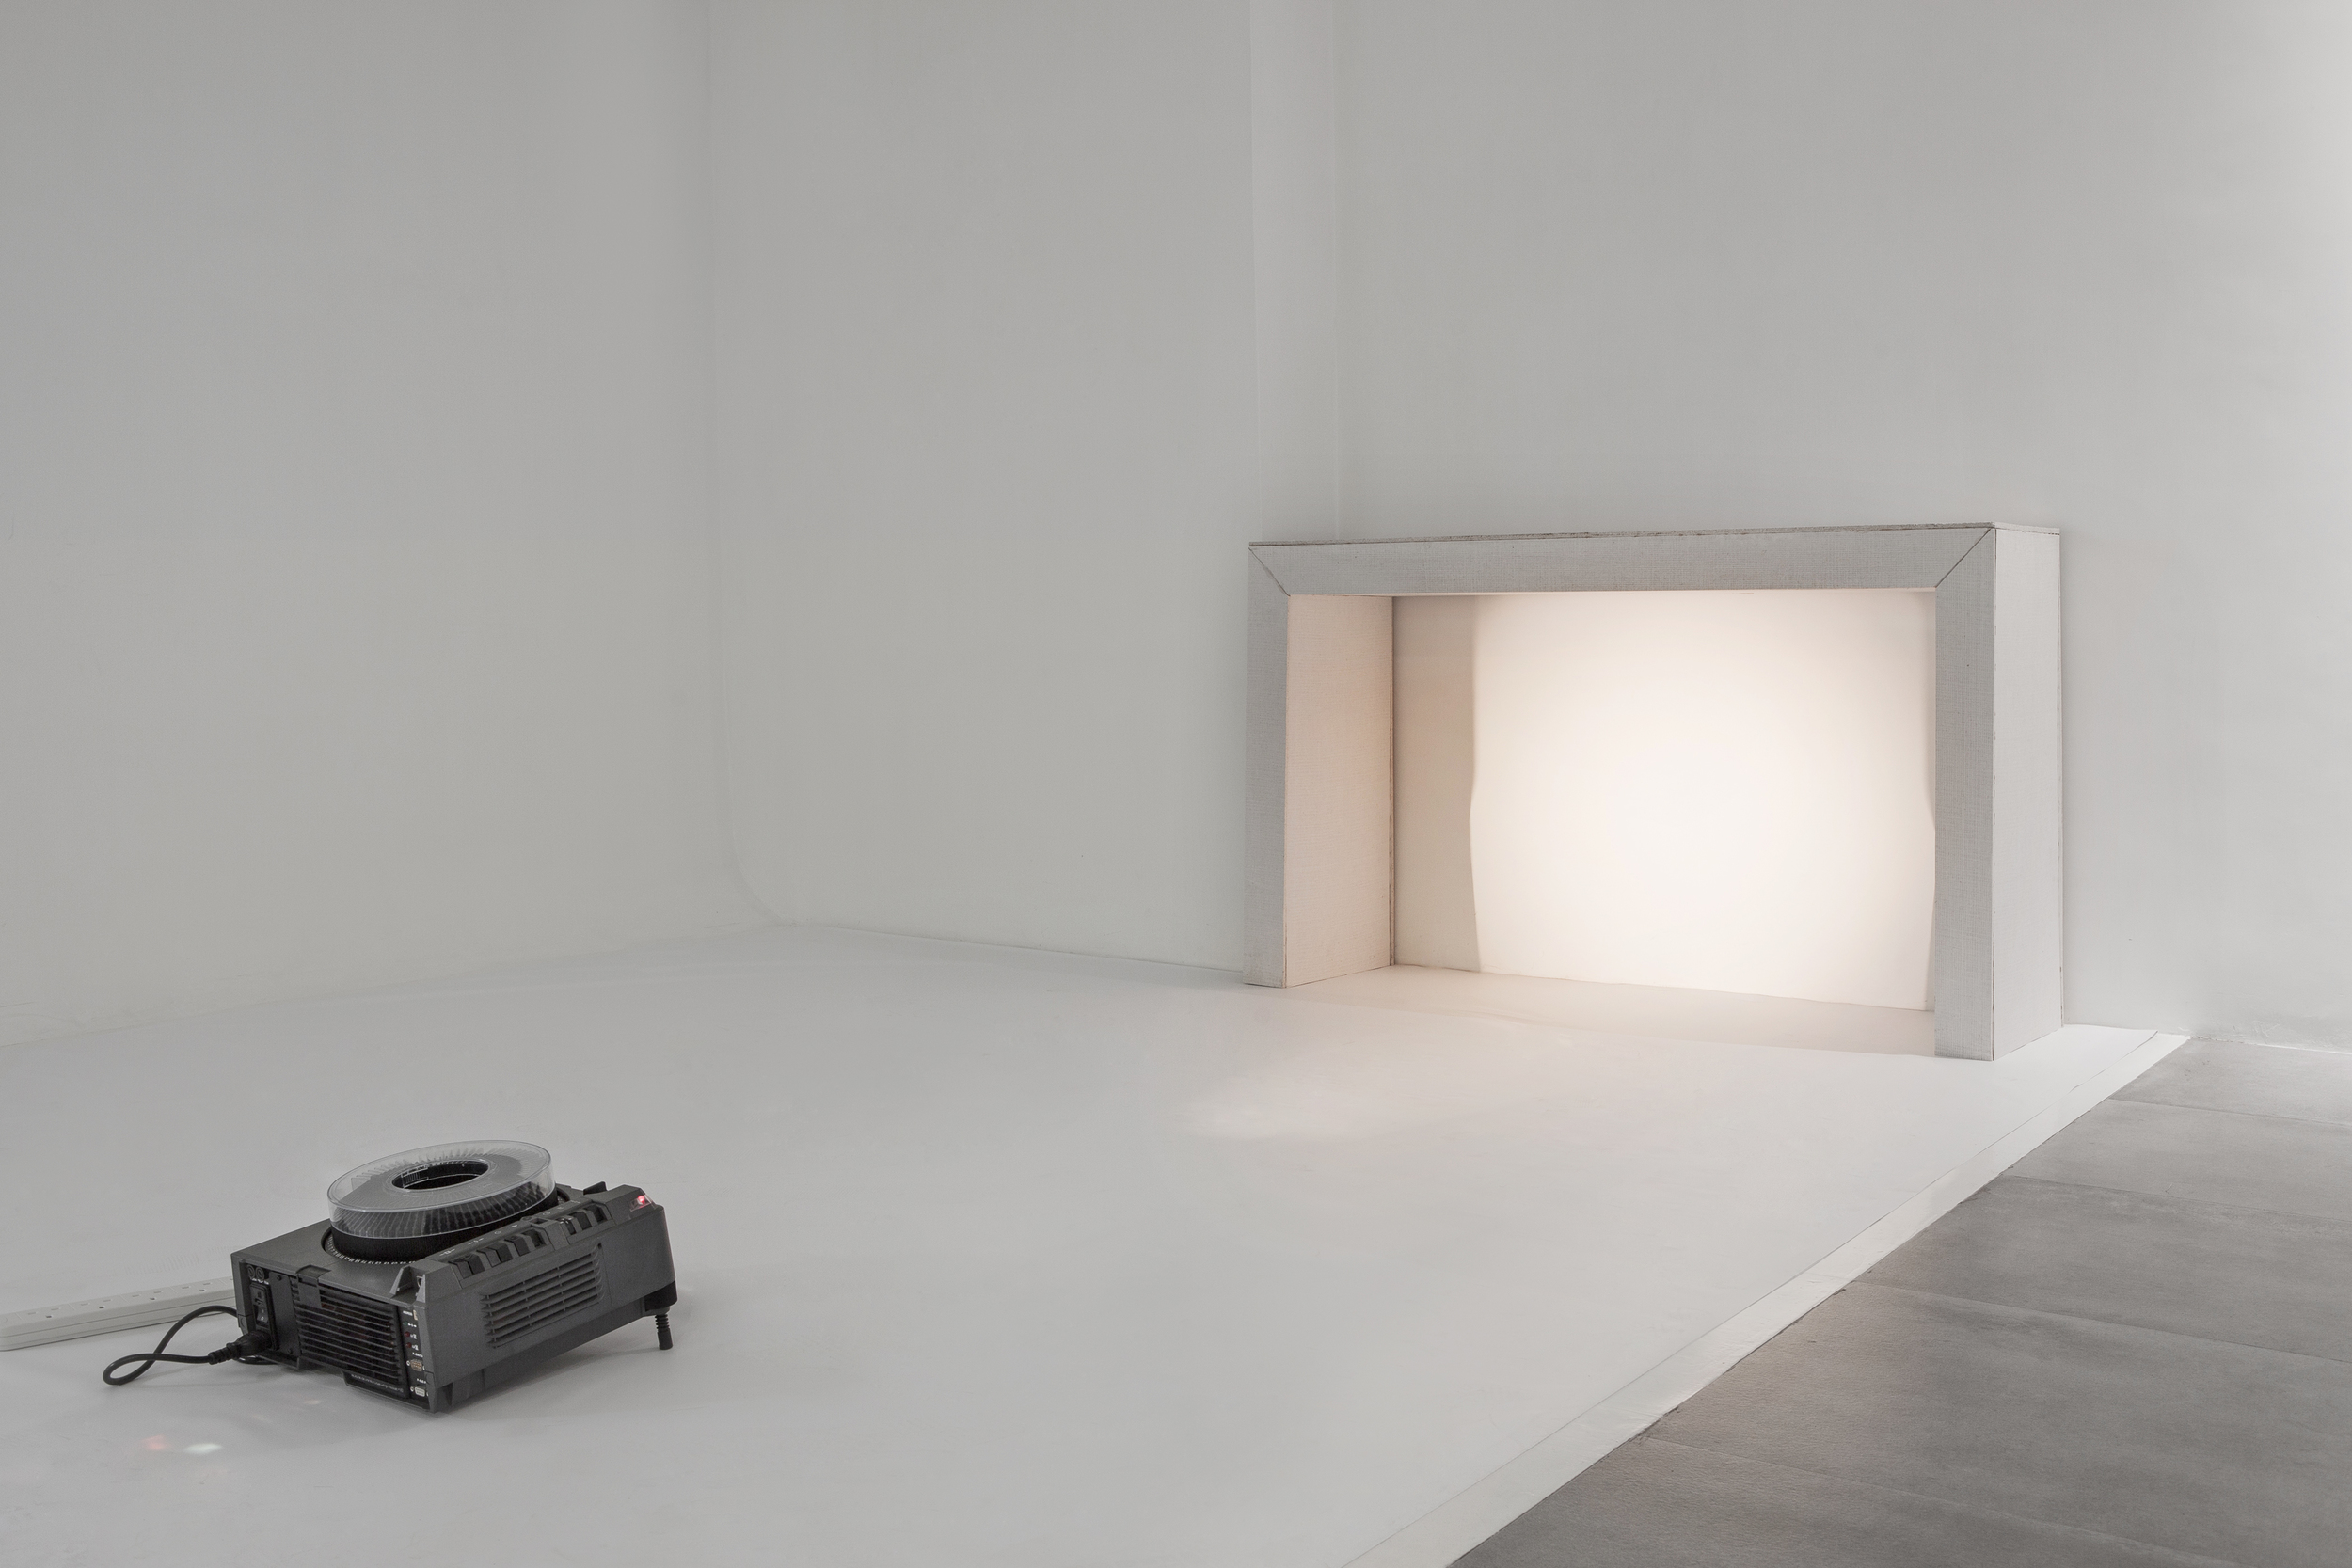 Fireplace (constructed)  , 150x90x40cm, fireproof wall, 35mm slide projection, 2014